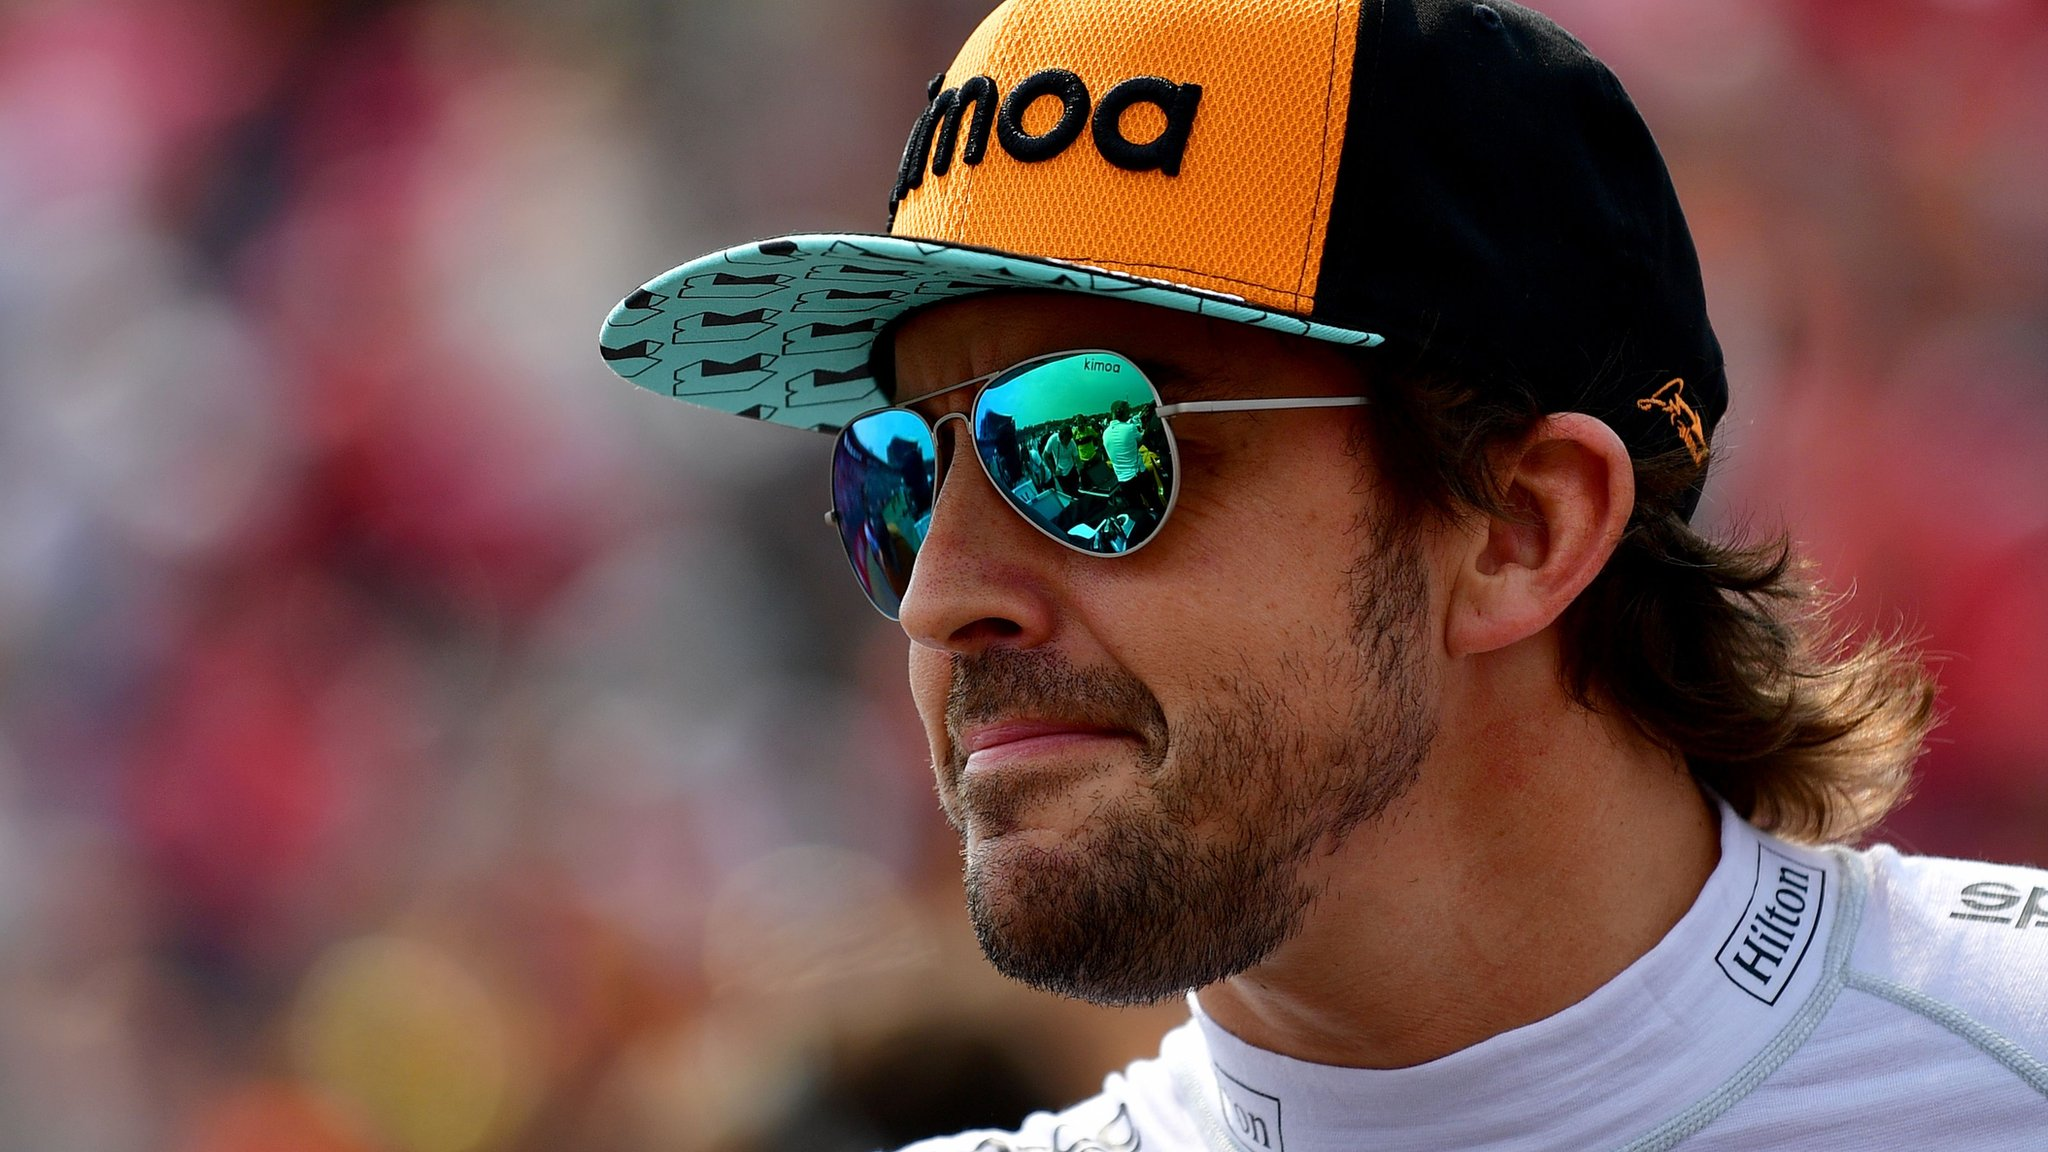 http://c.files.bbci.co.uk/FD80/production/_102969846_alonso_getty2.jpg